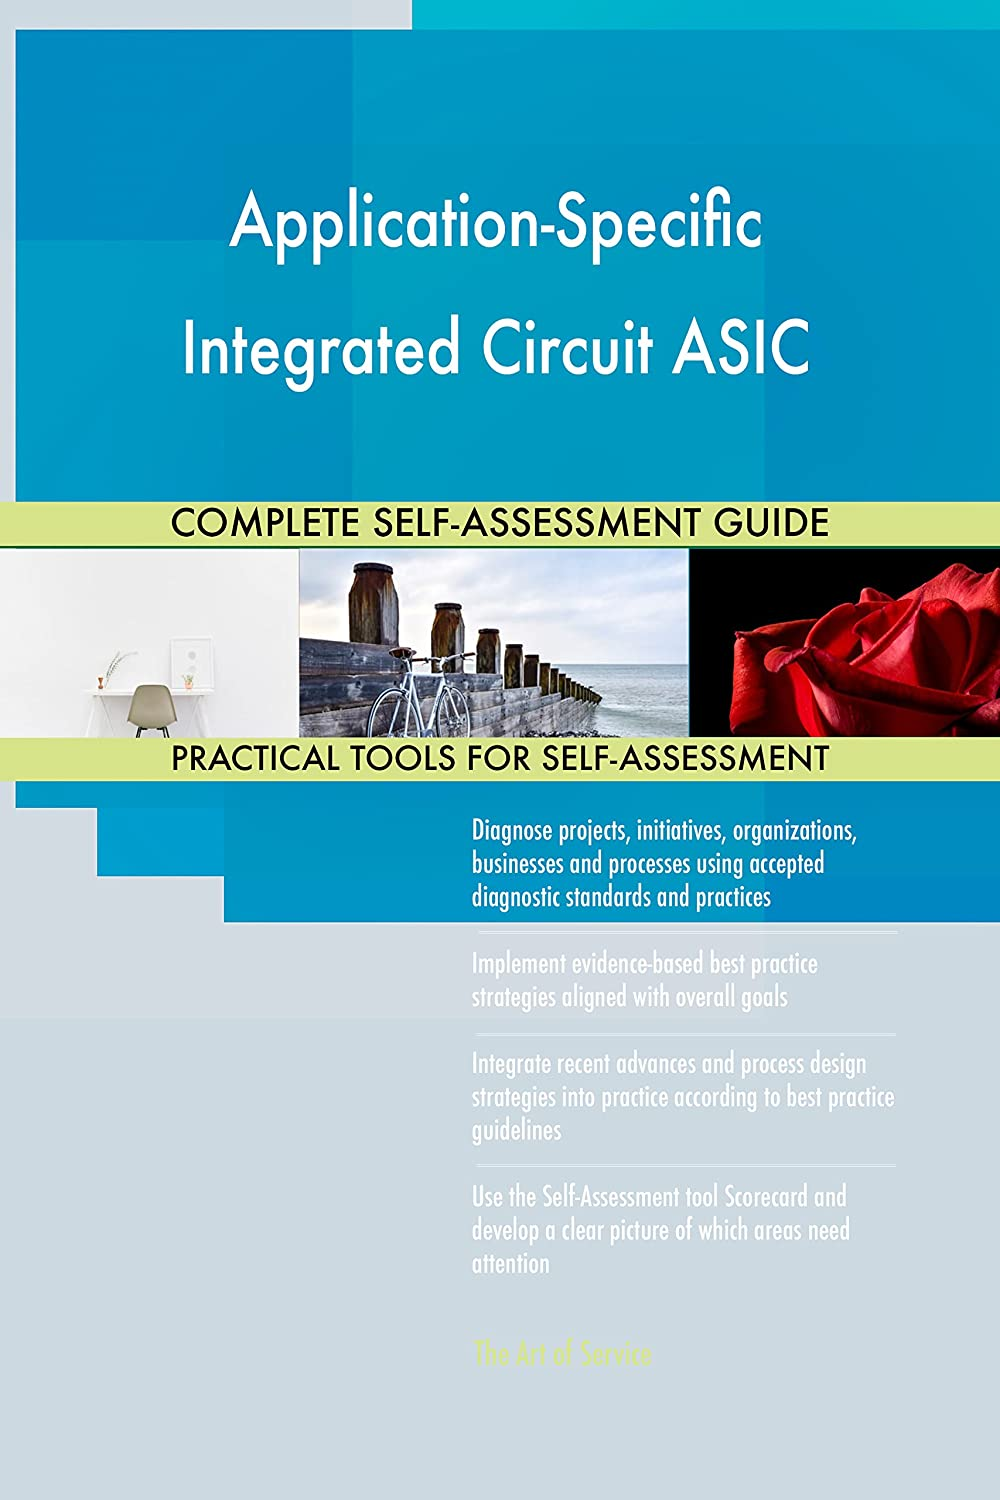 Application Specific Integrated Circuit Asic All Uses Of Inclusive Self Assessment More Than 0 Success Criteria Instant Visual Insights